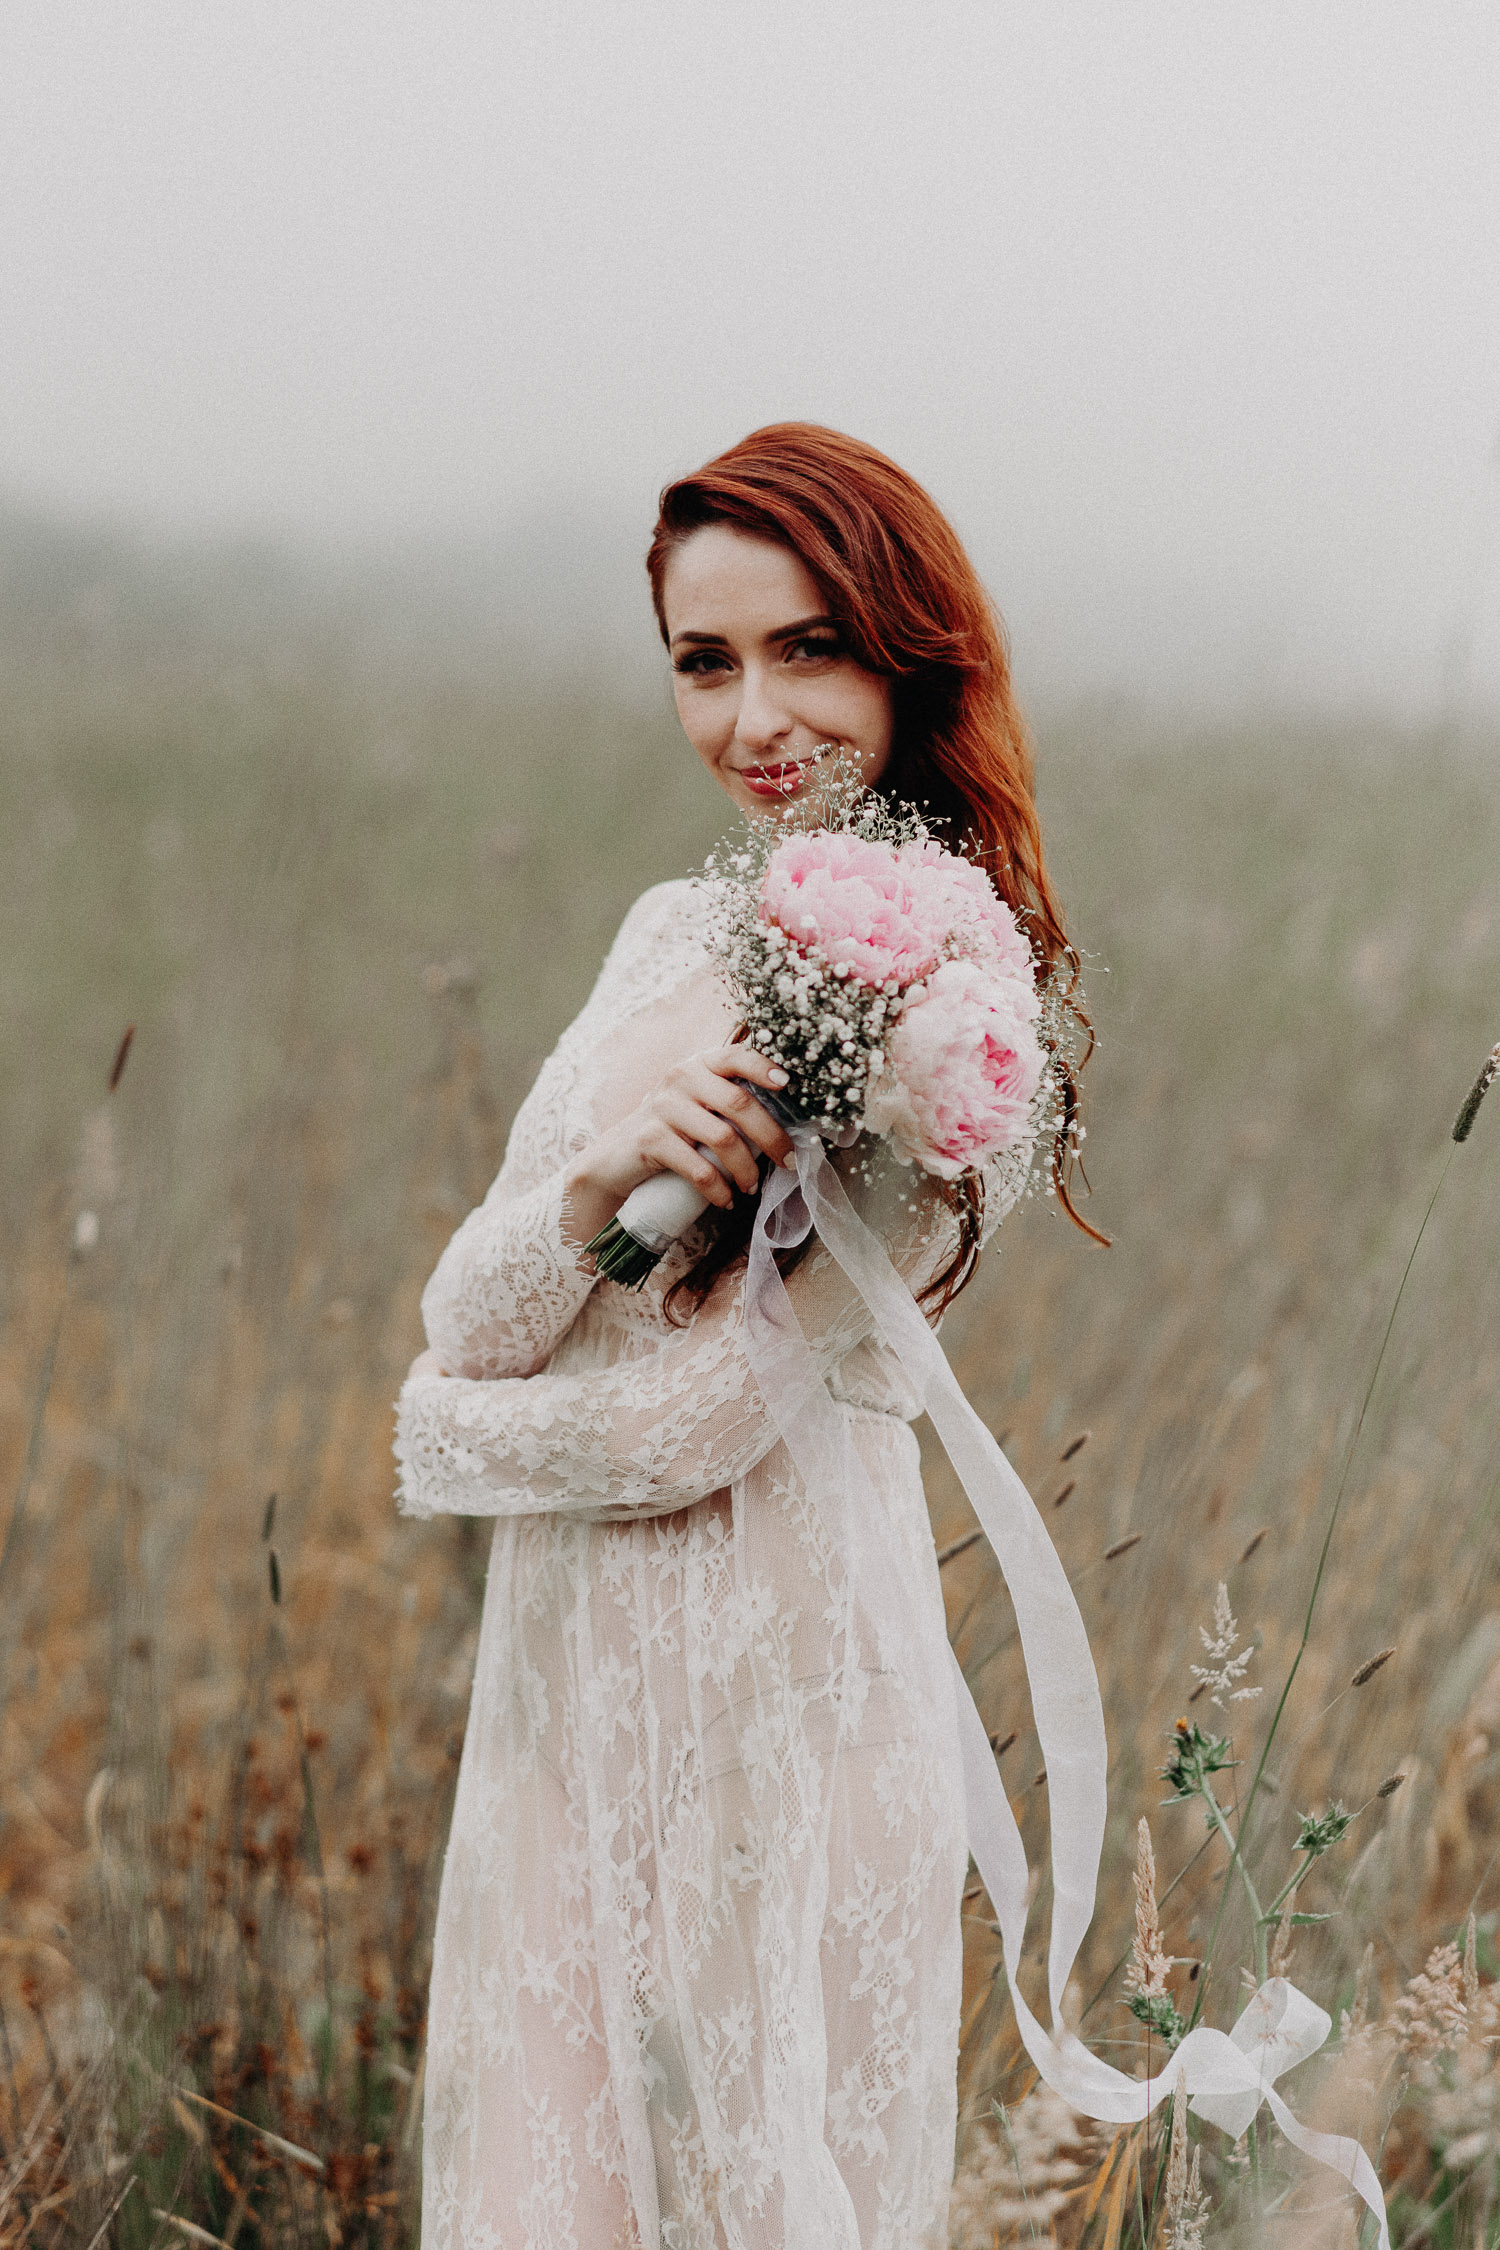 Image of red hair bride holds pink bouquet and smiles